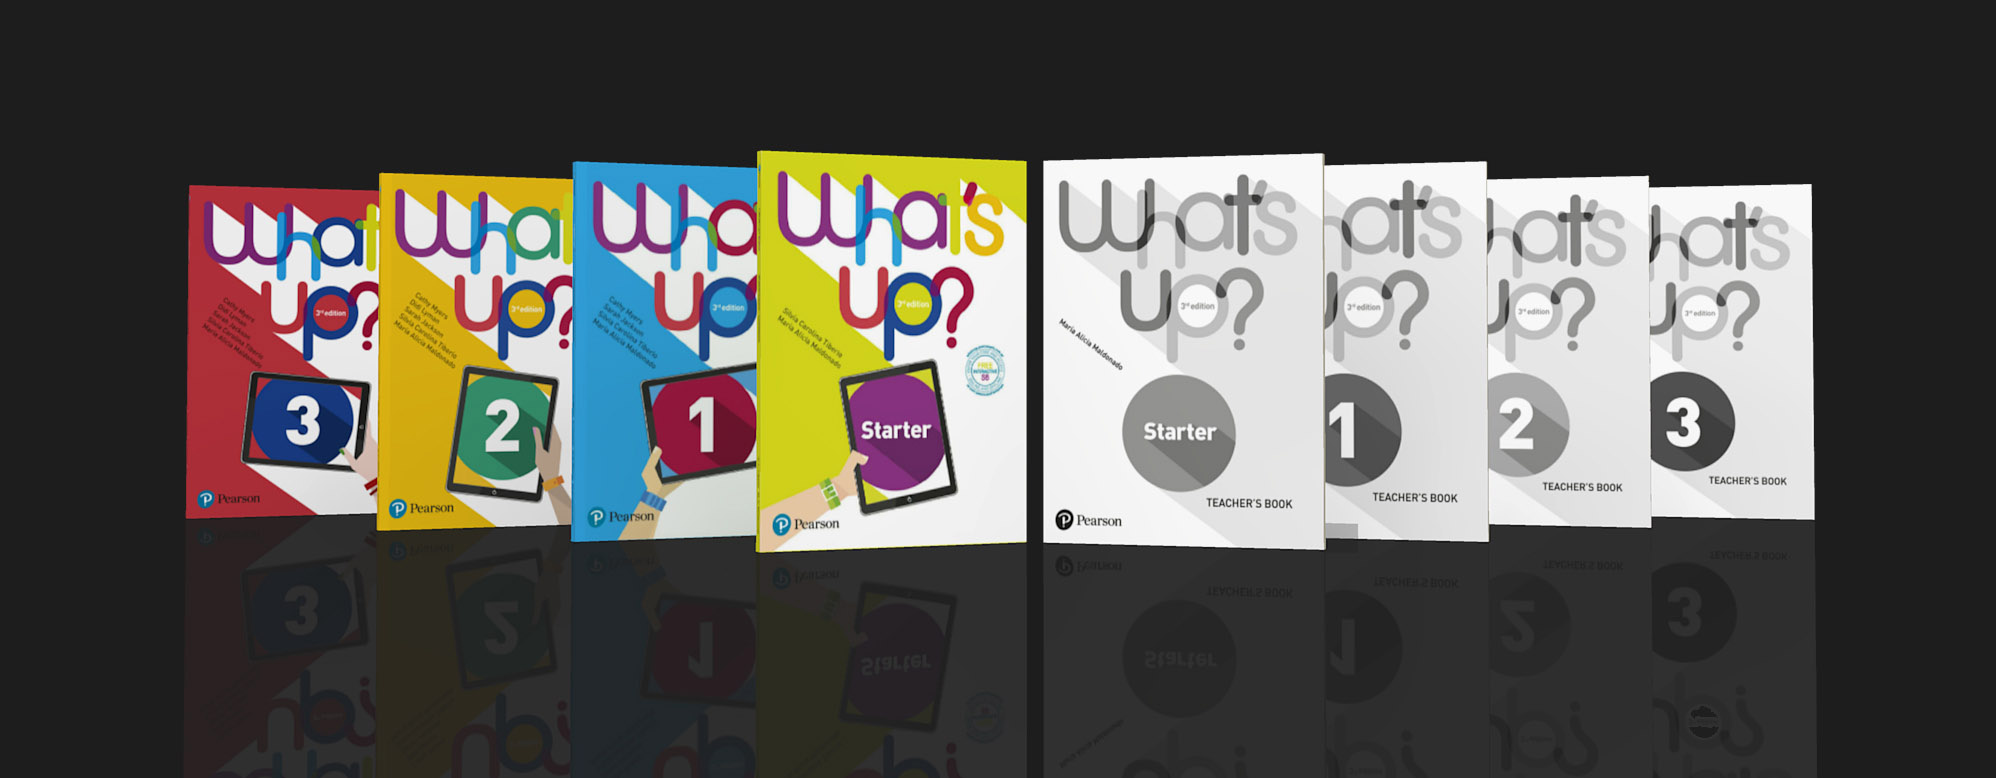 What's Up? 3rd Edition - Student's and Teacher's Books